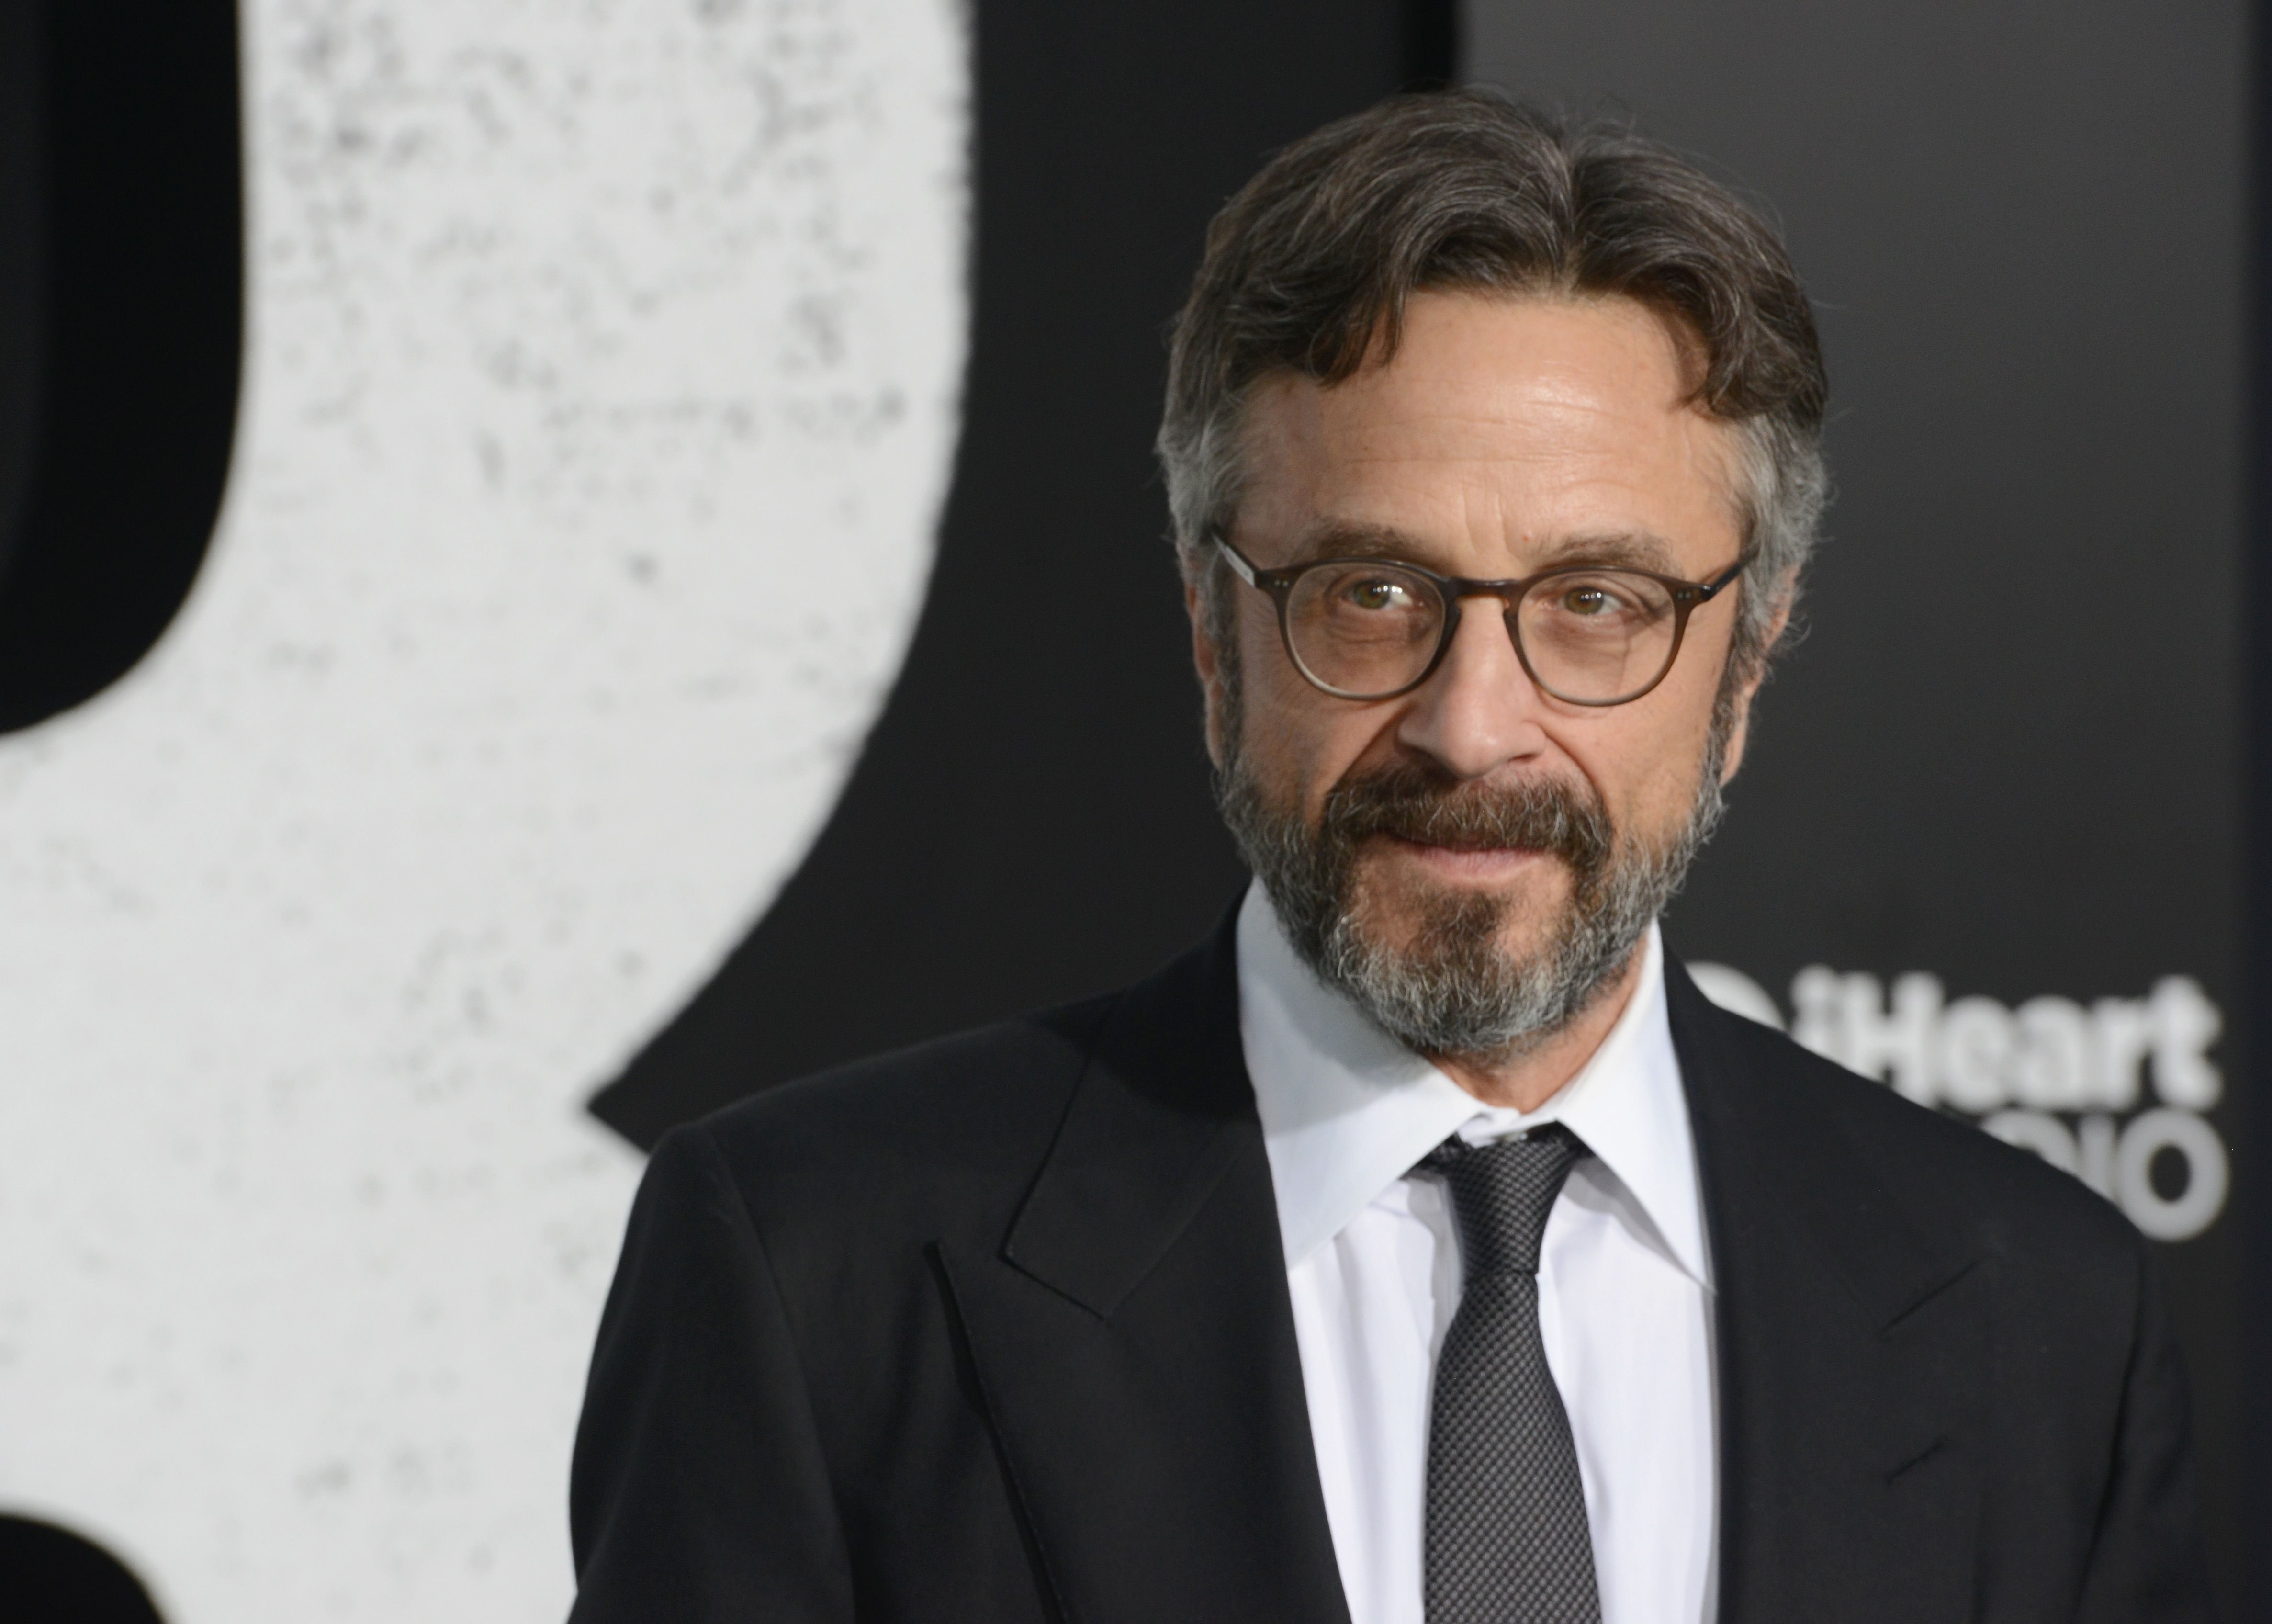 """Joker actor fires back at director Todd Phillips' controversial """"woke culture"""" complaints"""